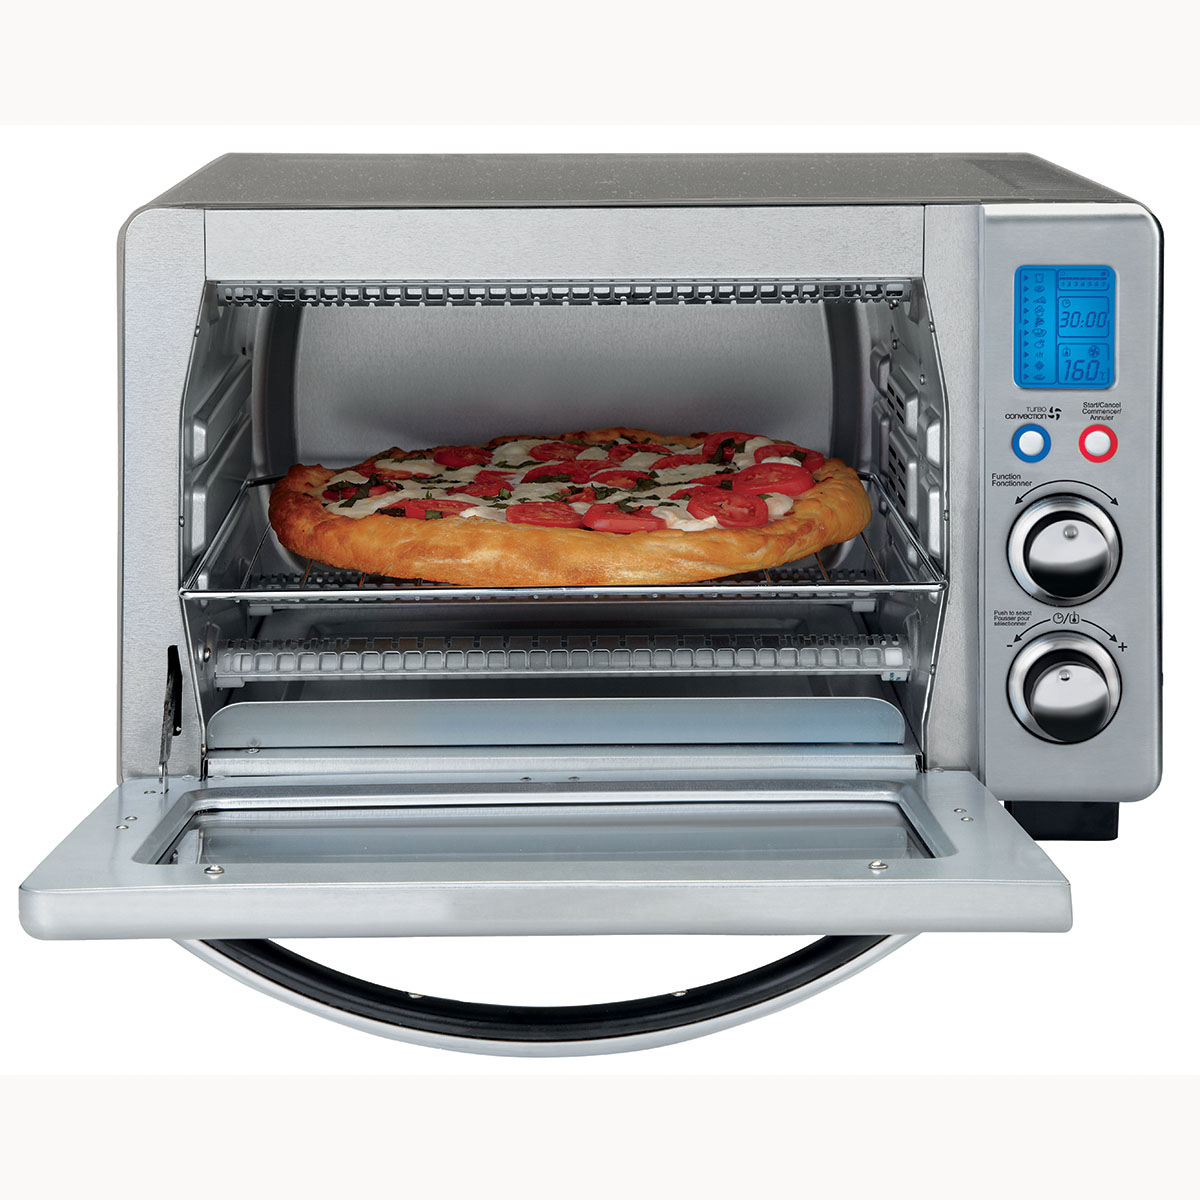 Oster Countertop Oven Tssttvxxll : Oster? 6-Slice Digital Countertop Oven with Convection, Stainless ...